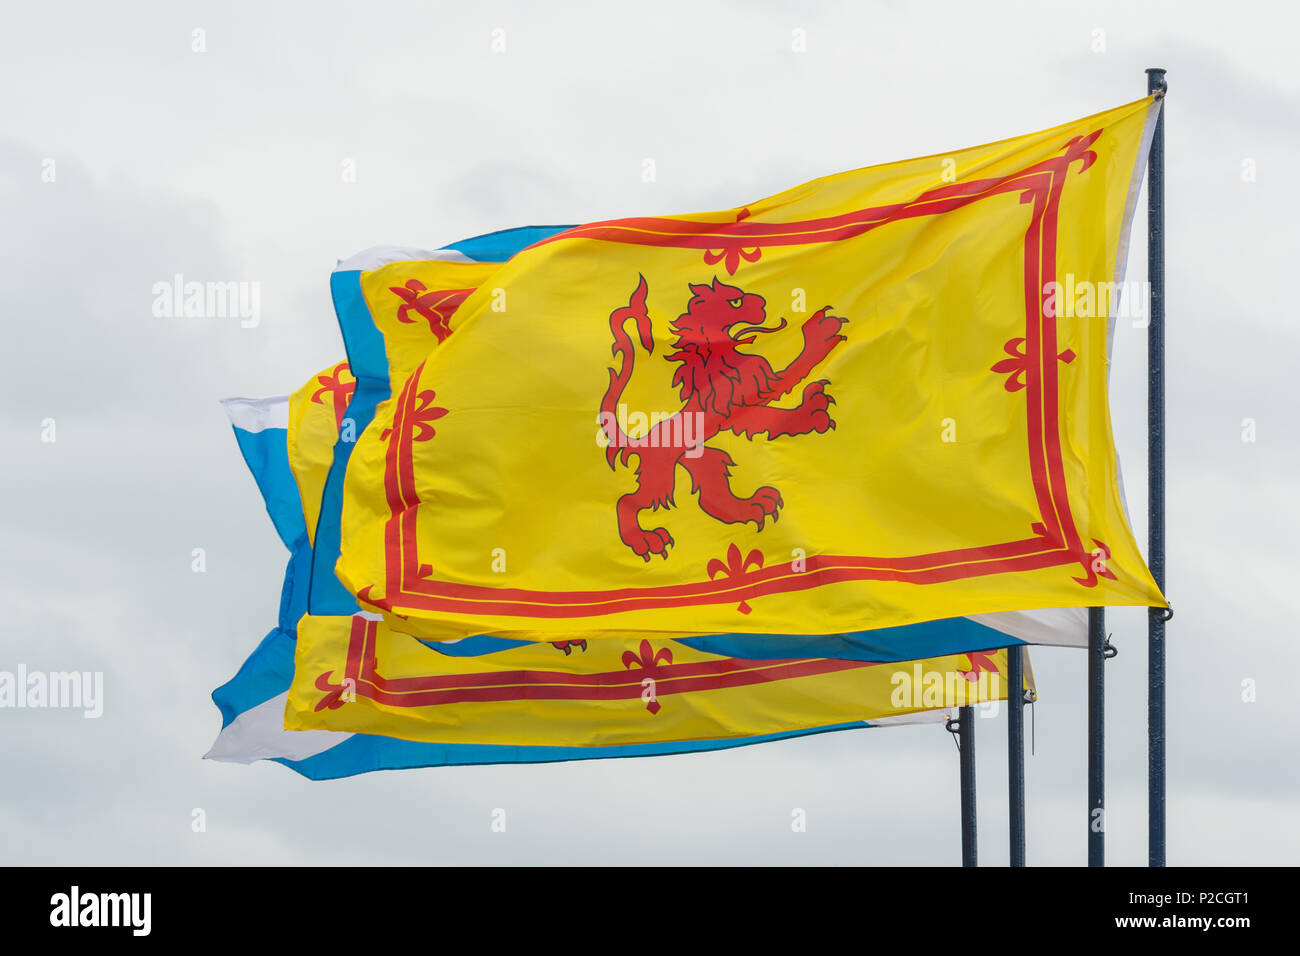 Scottish Flags - the Lion Rampant or Royal Banner of Scotland flying alongside the Scottish saltire - Stock Image